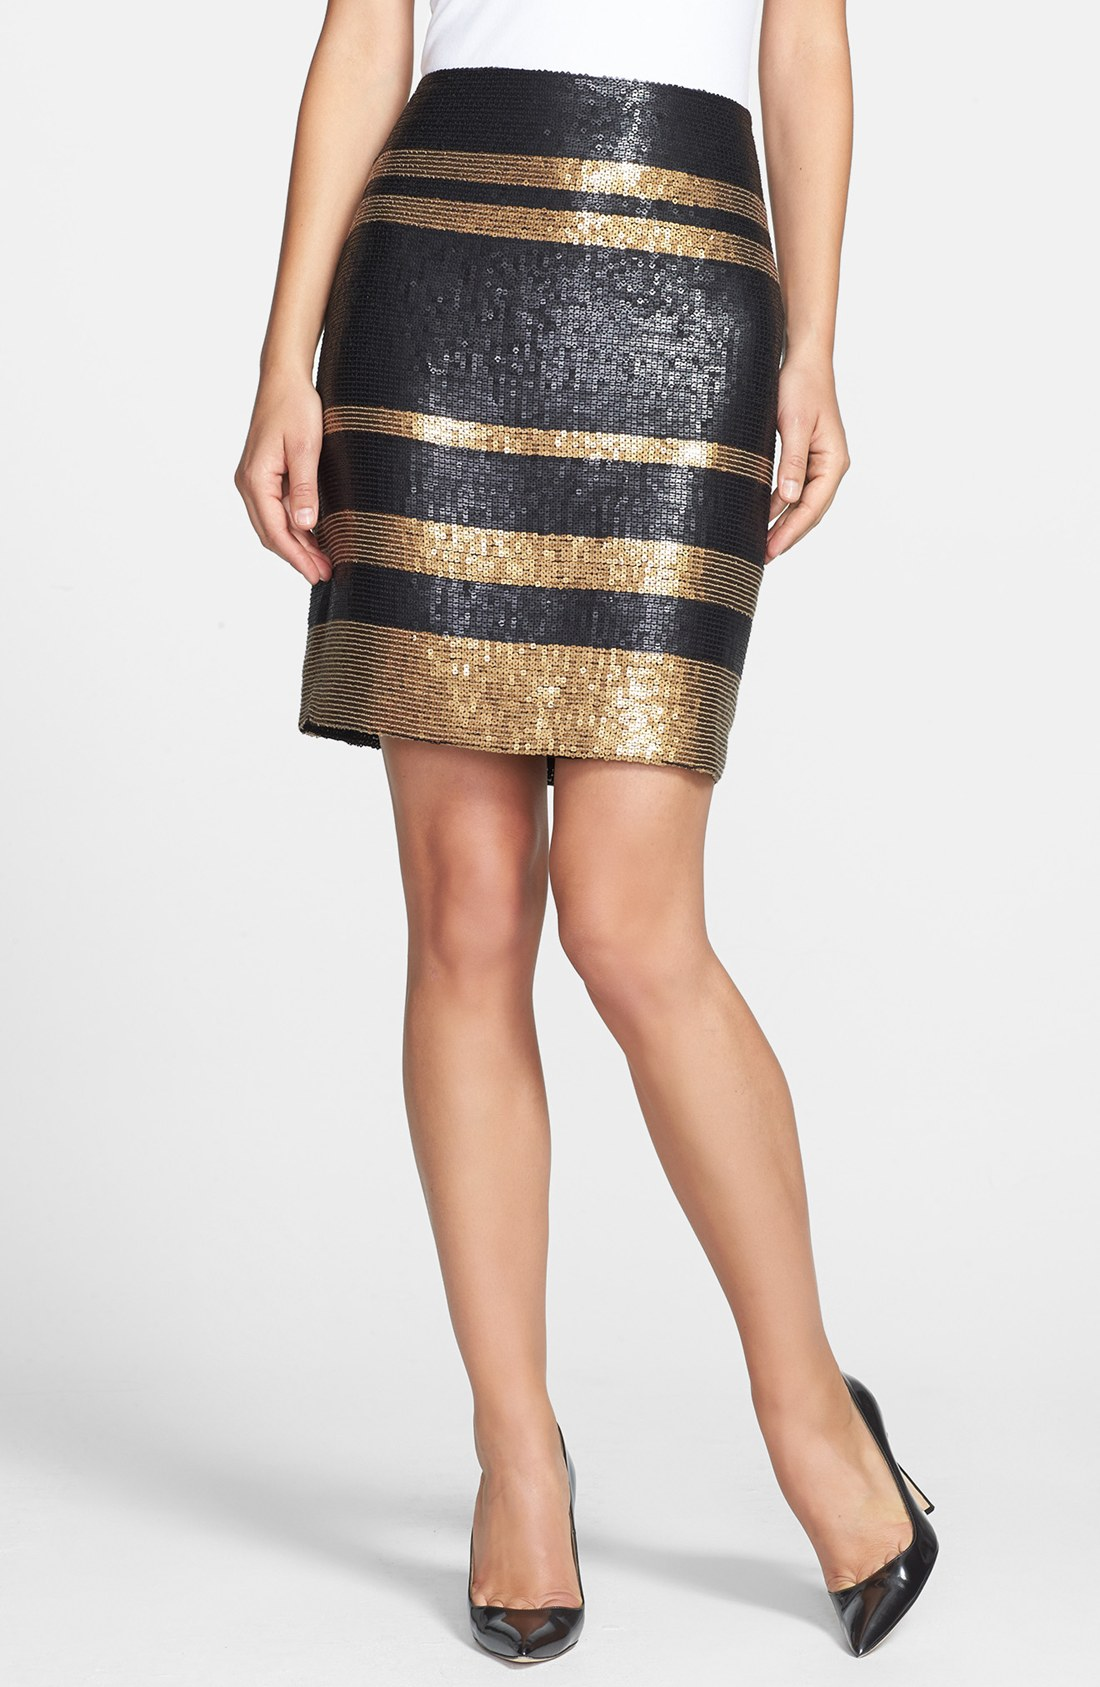 Add some sparkle to your outfit with a Gold Sequin Dress, including a Casual Gold Sequin Dress and a Formal Gold Sequin Dress, at Macy's.